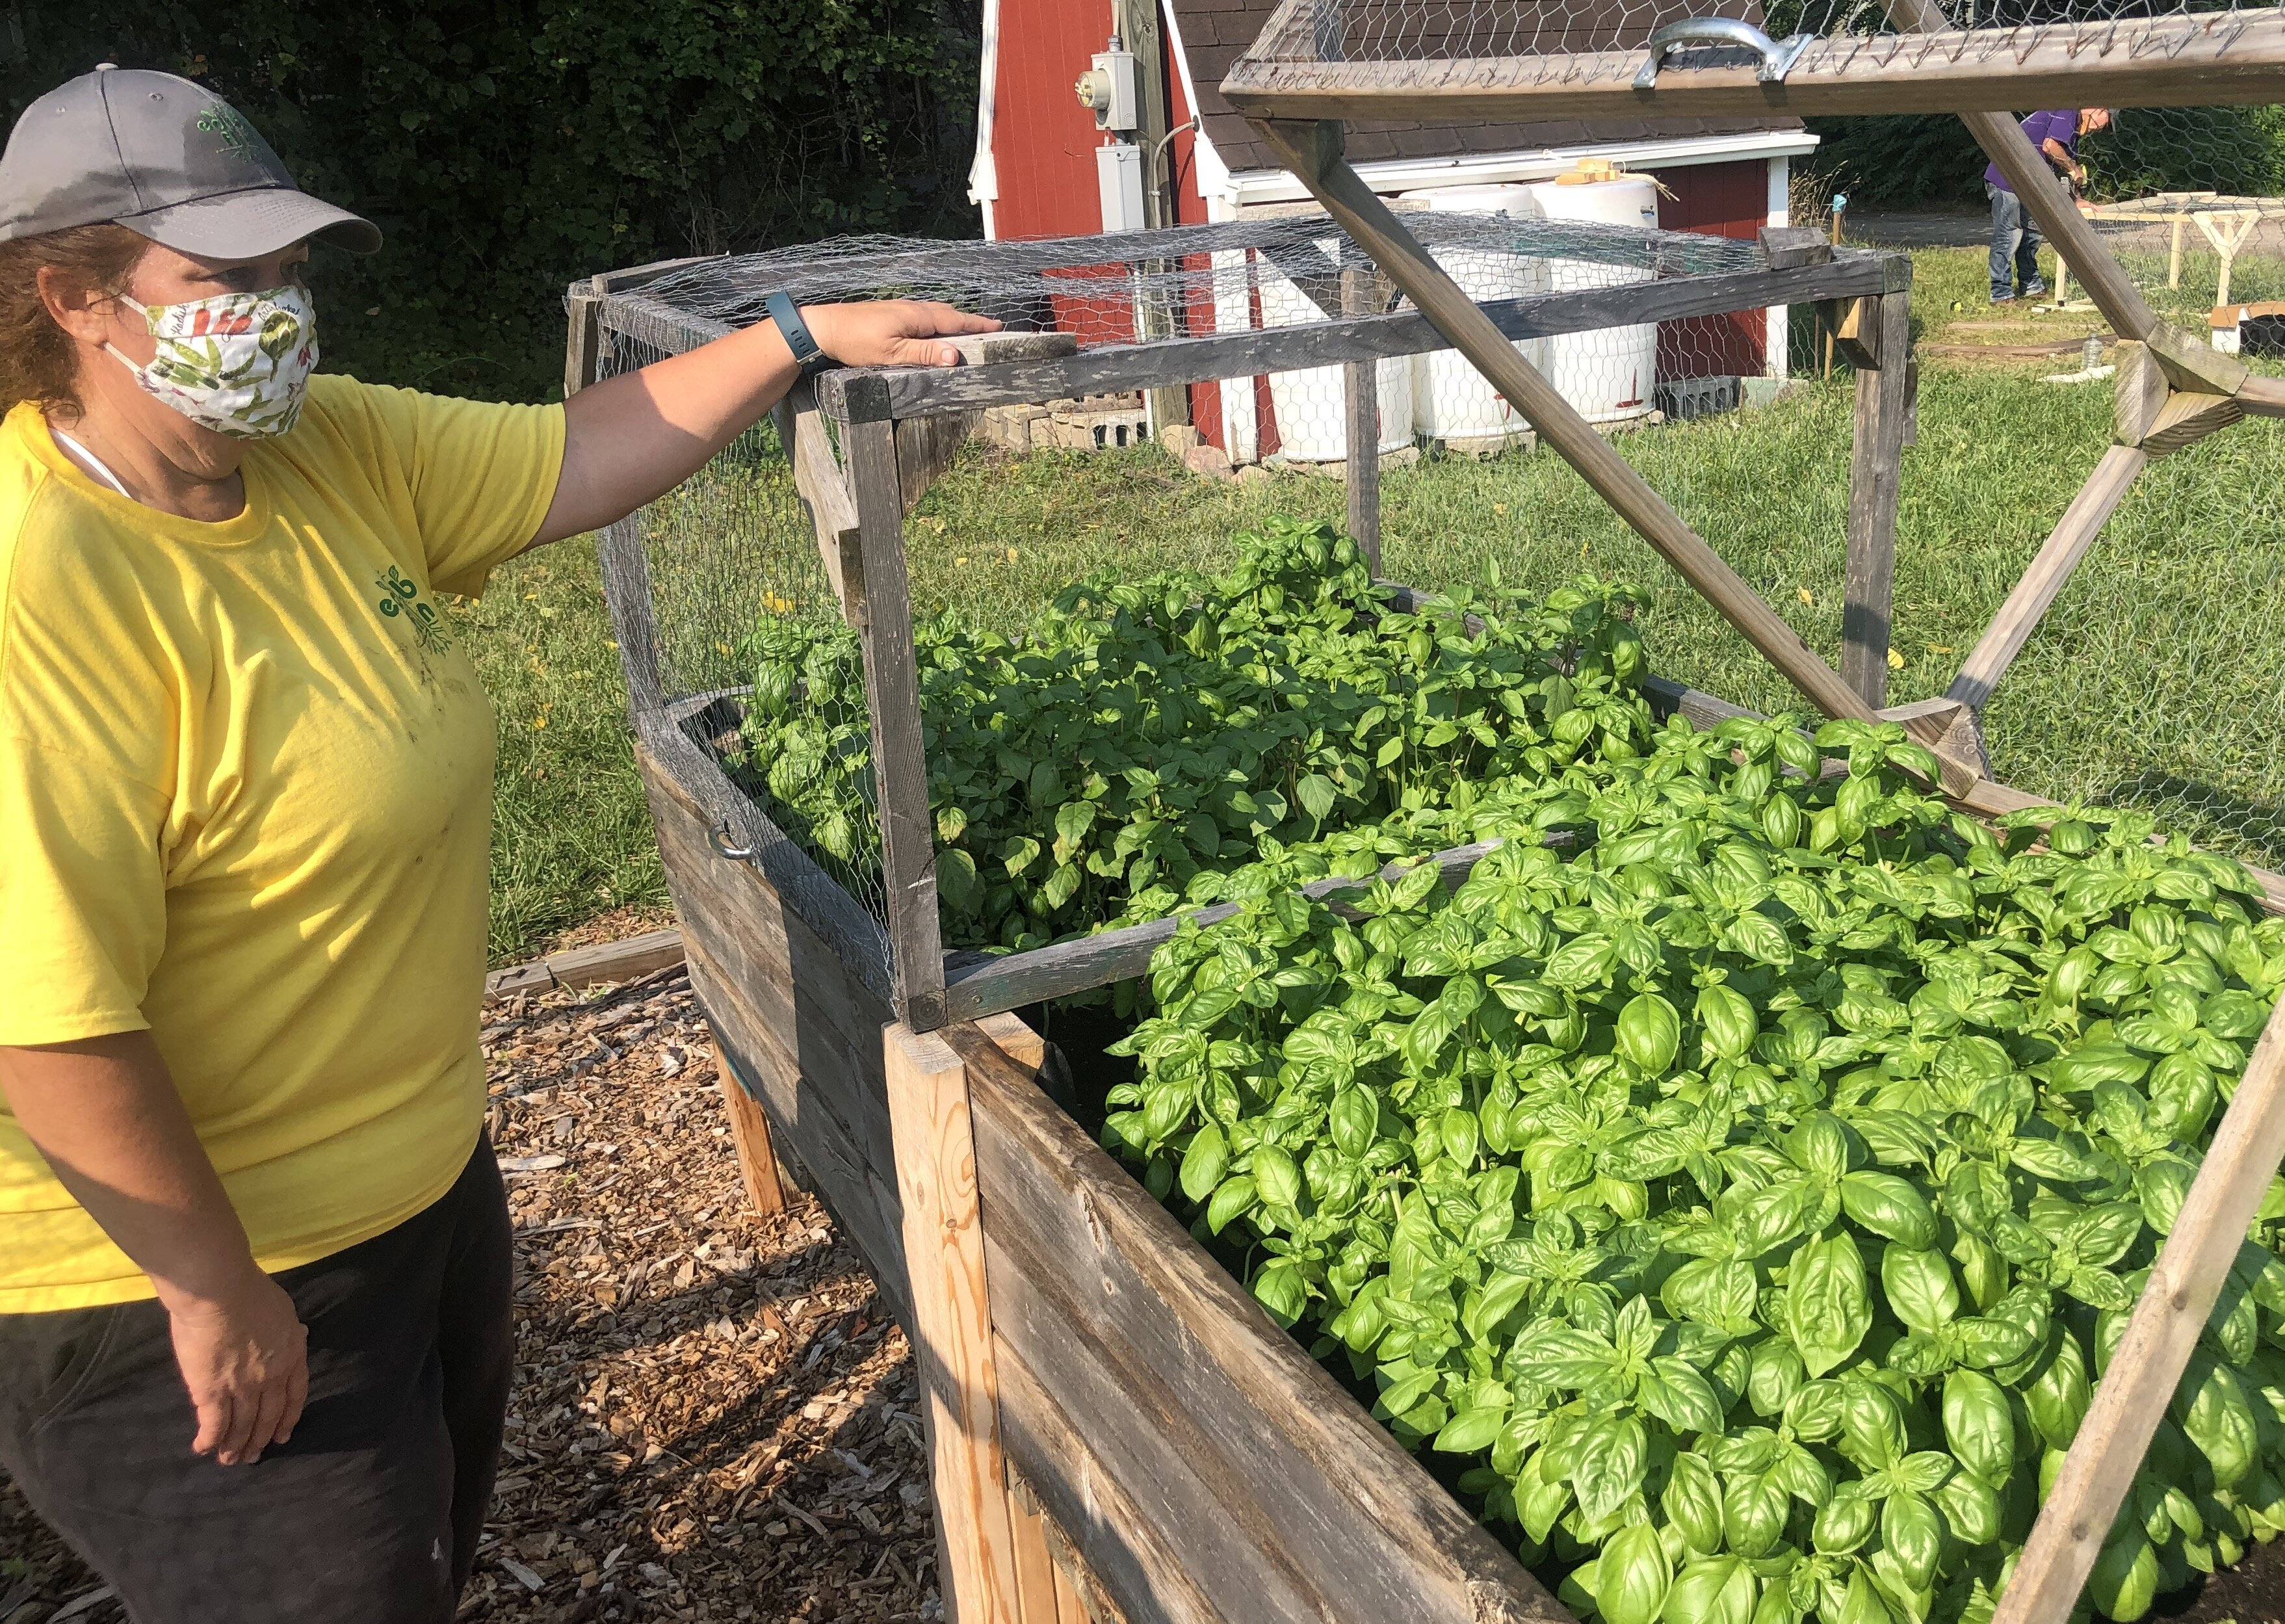 Ginny Farah shows off some of the crops in raised beds at Edible Flint's Educational Farm.